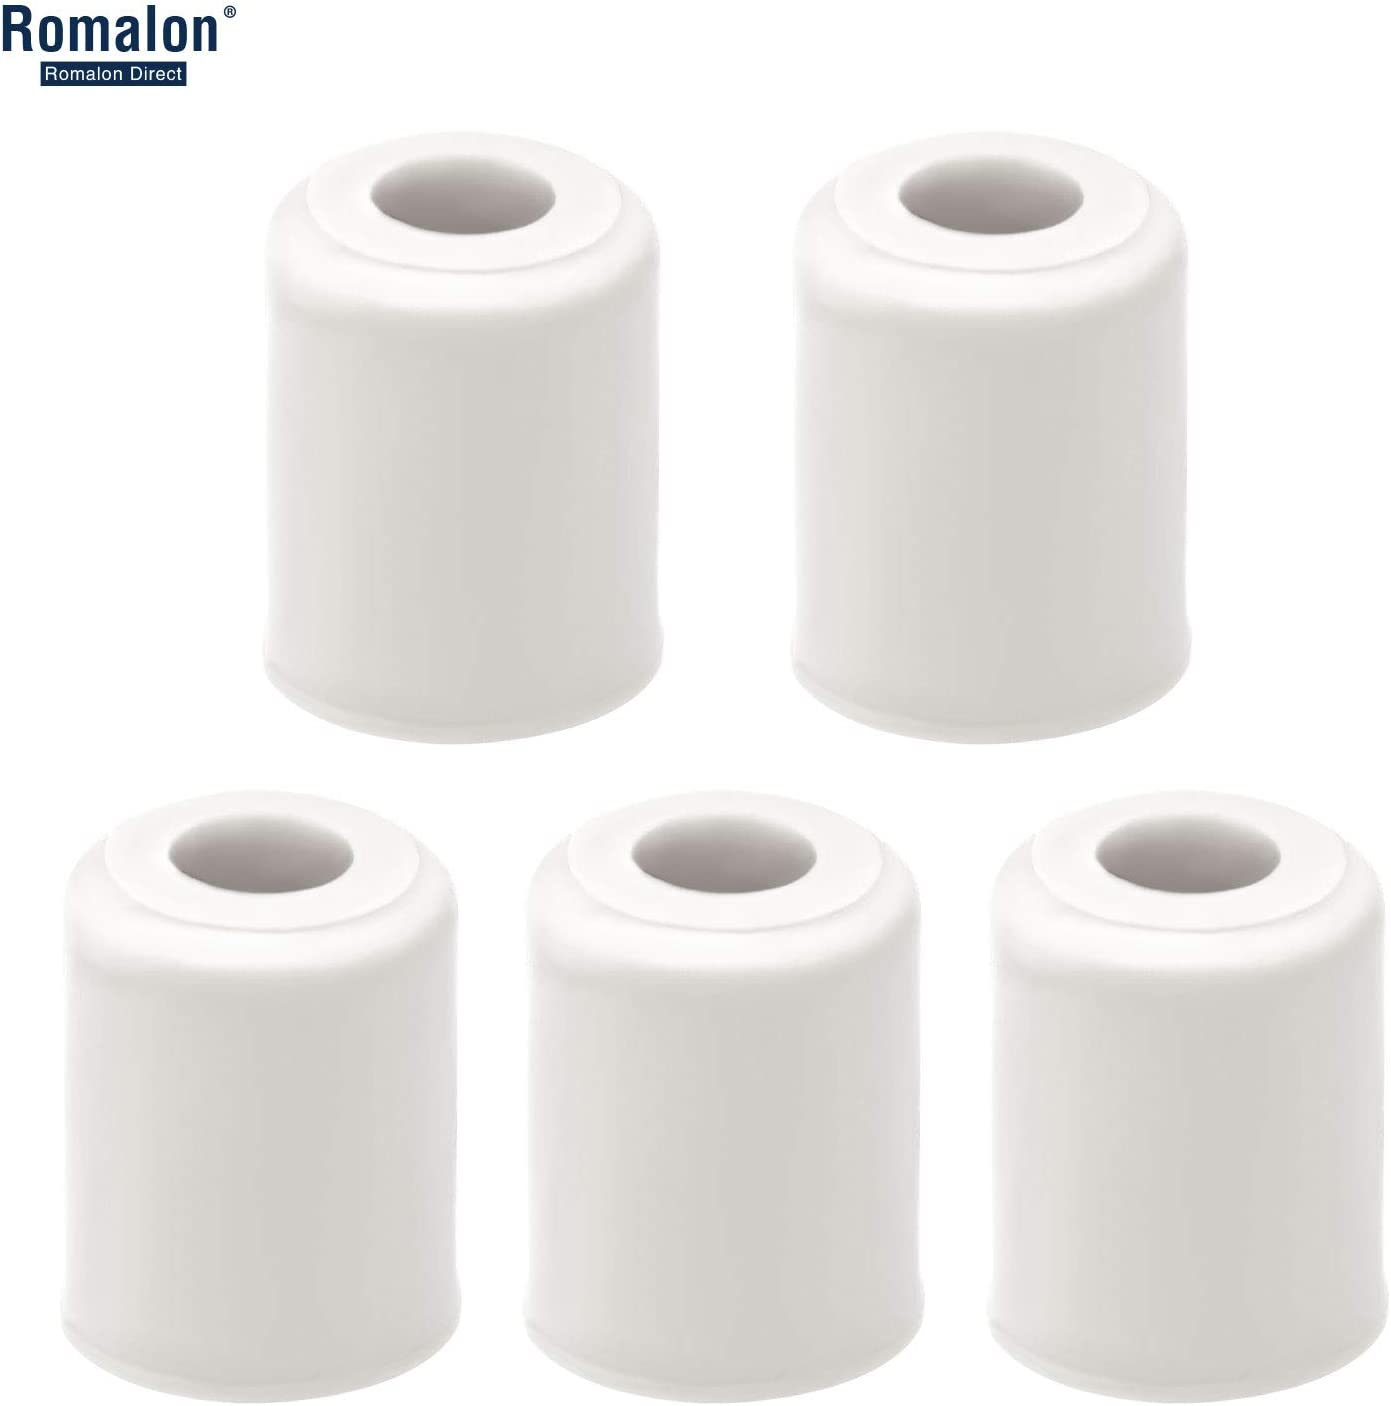 Romalon 4161530 Mixers Rubber Feet (5Pcs) Replacement for Stand Mixers&Blenders Replace for 9709707 115792